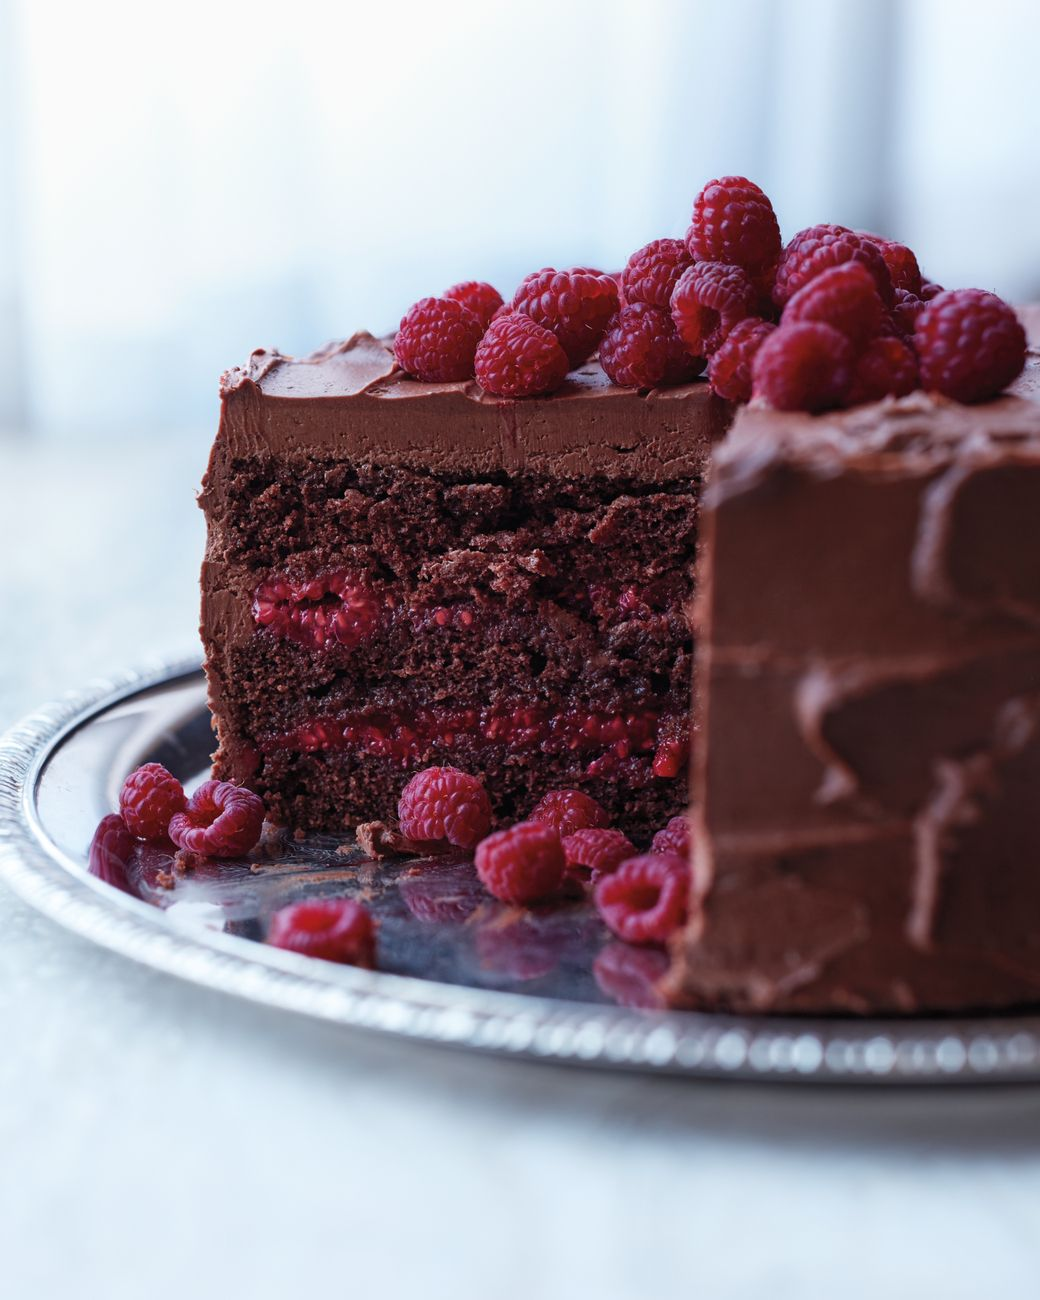 Best Raspberry Filling For Chocolate Cake